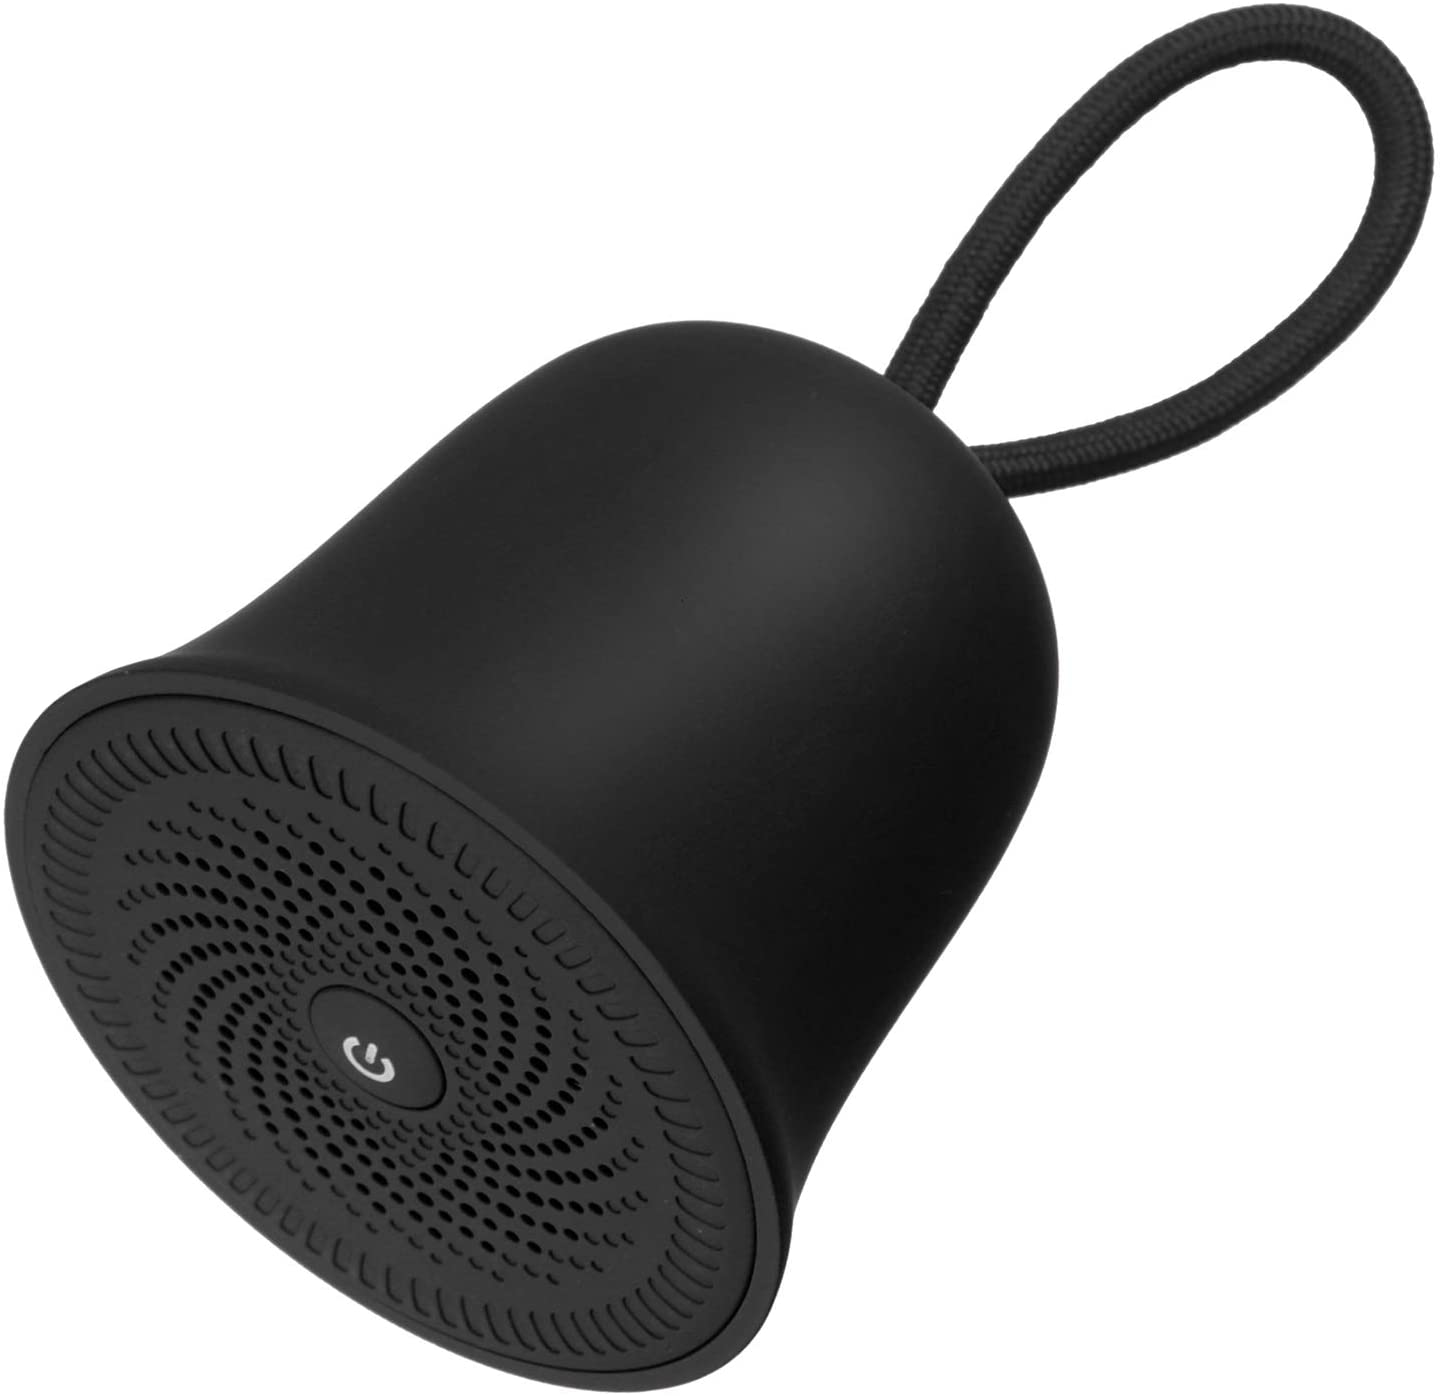 Save 40% on Mini Portable Bluetooth Speaker with Rich Bass